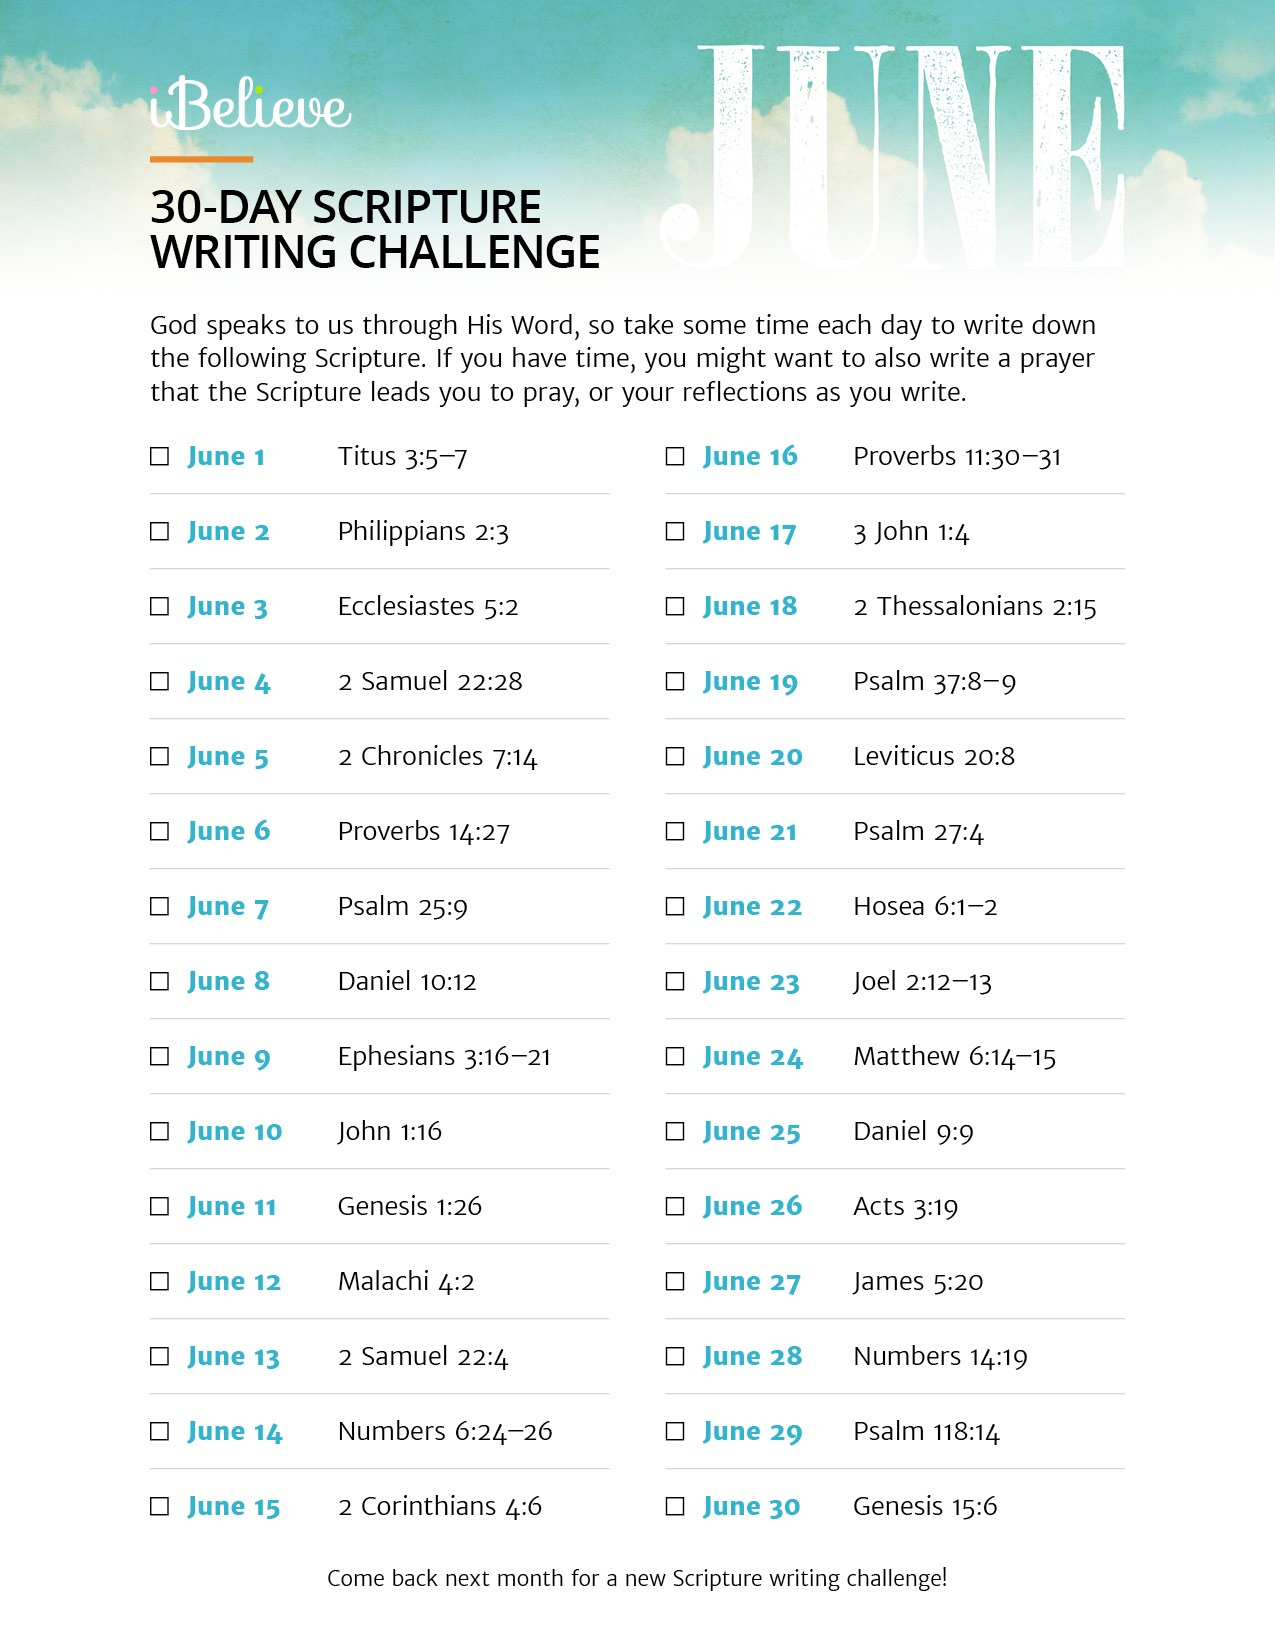 June Scripture Writing Guide